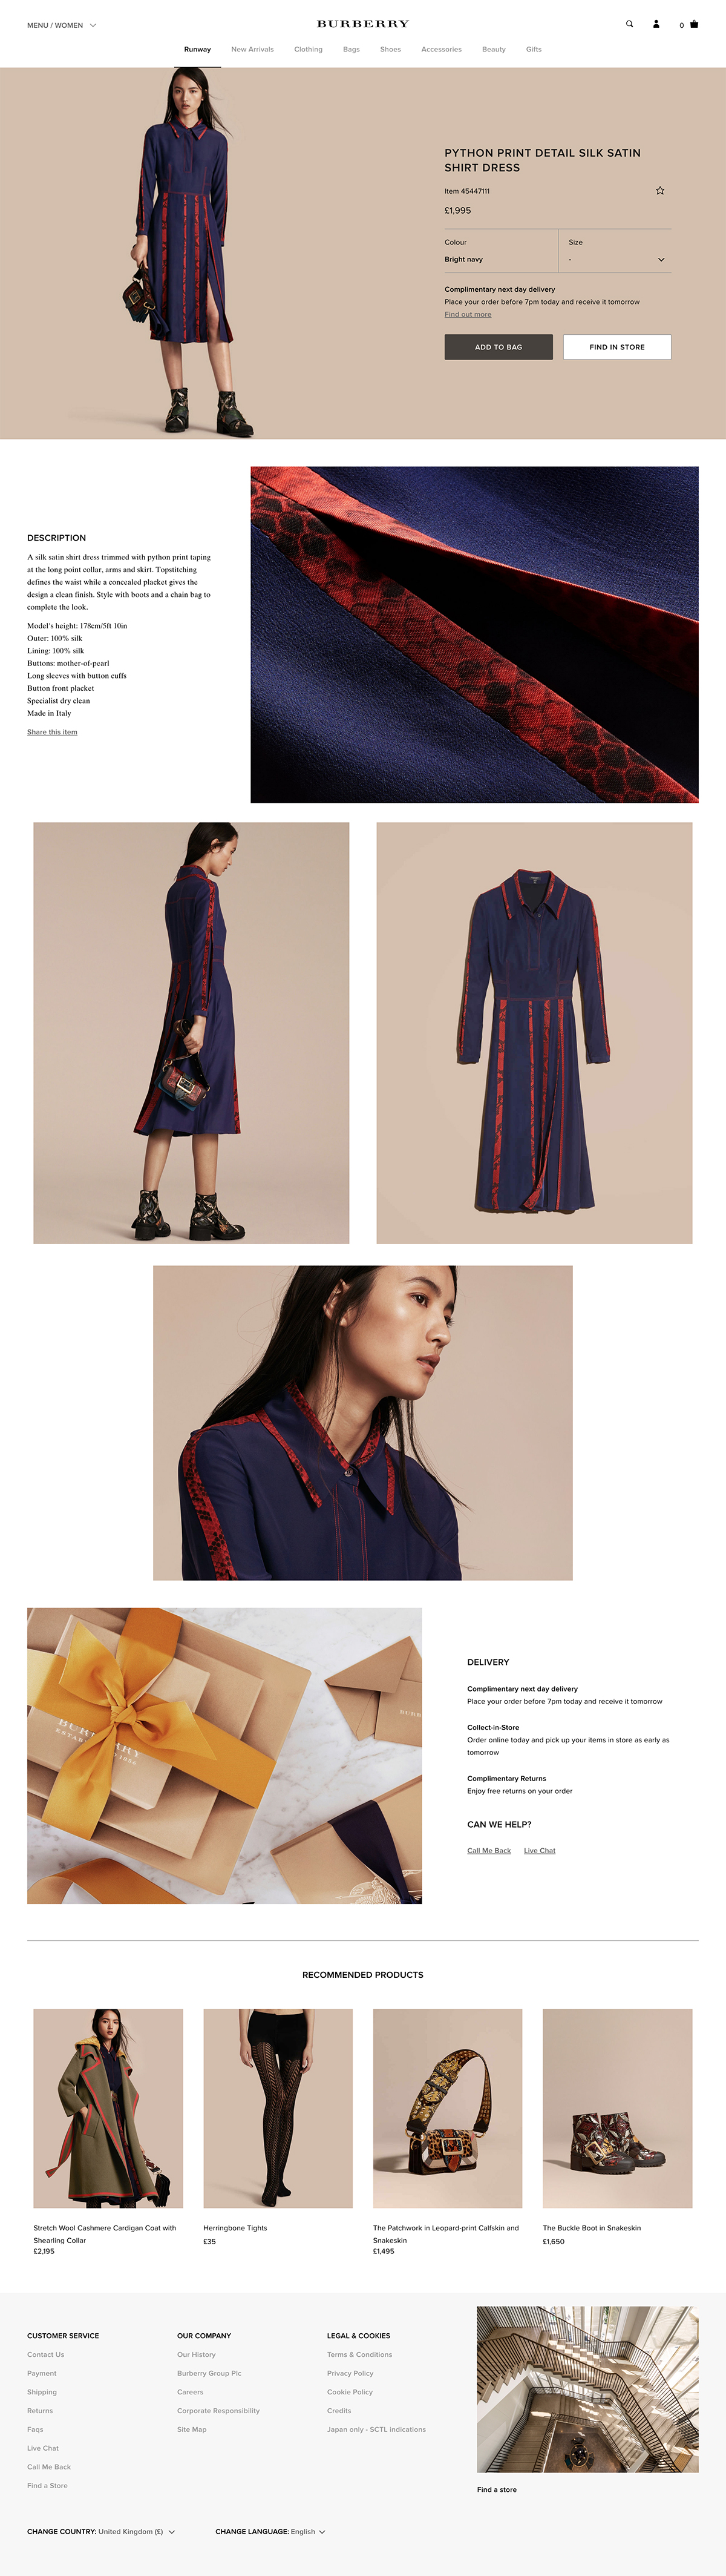 screencapture-uk-burberry-python-print-detail-silk-satin-shirt-dress-p45447111-1473753403651